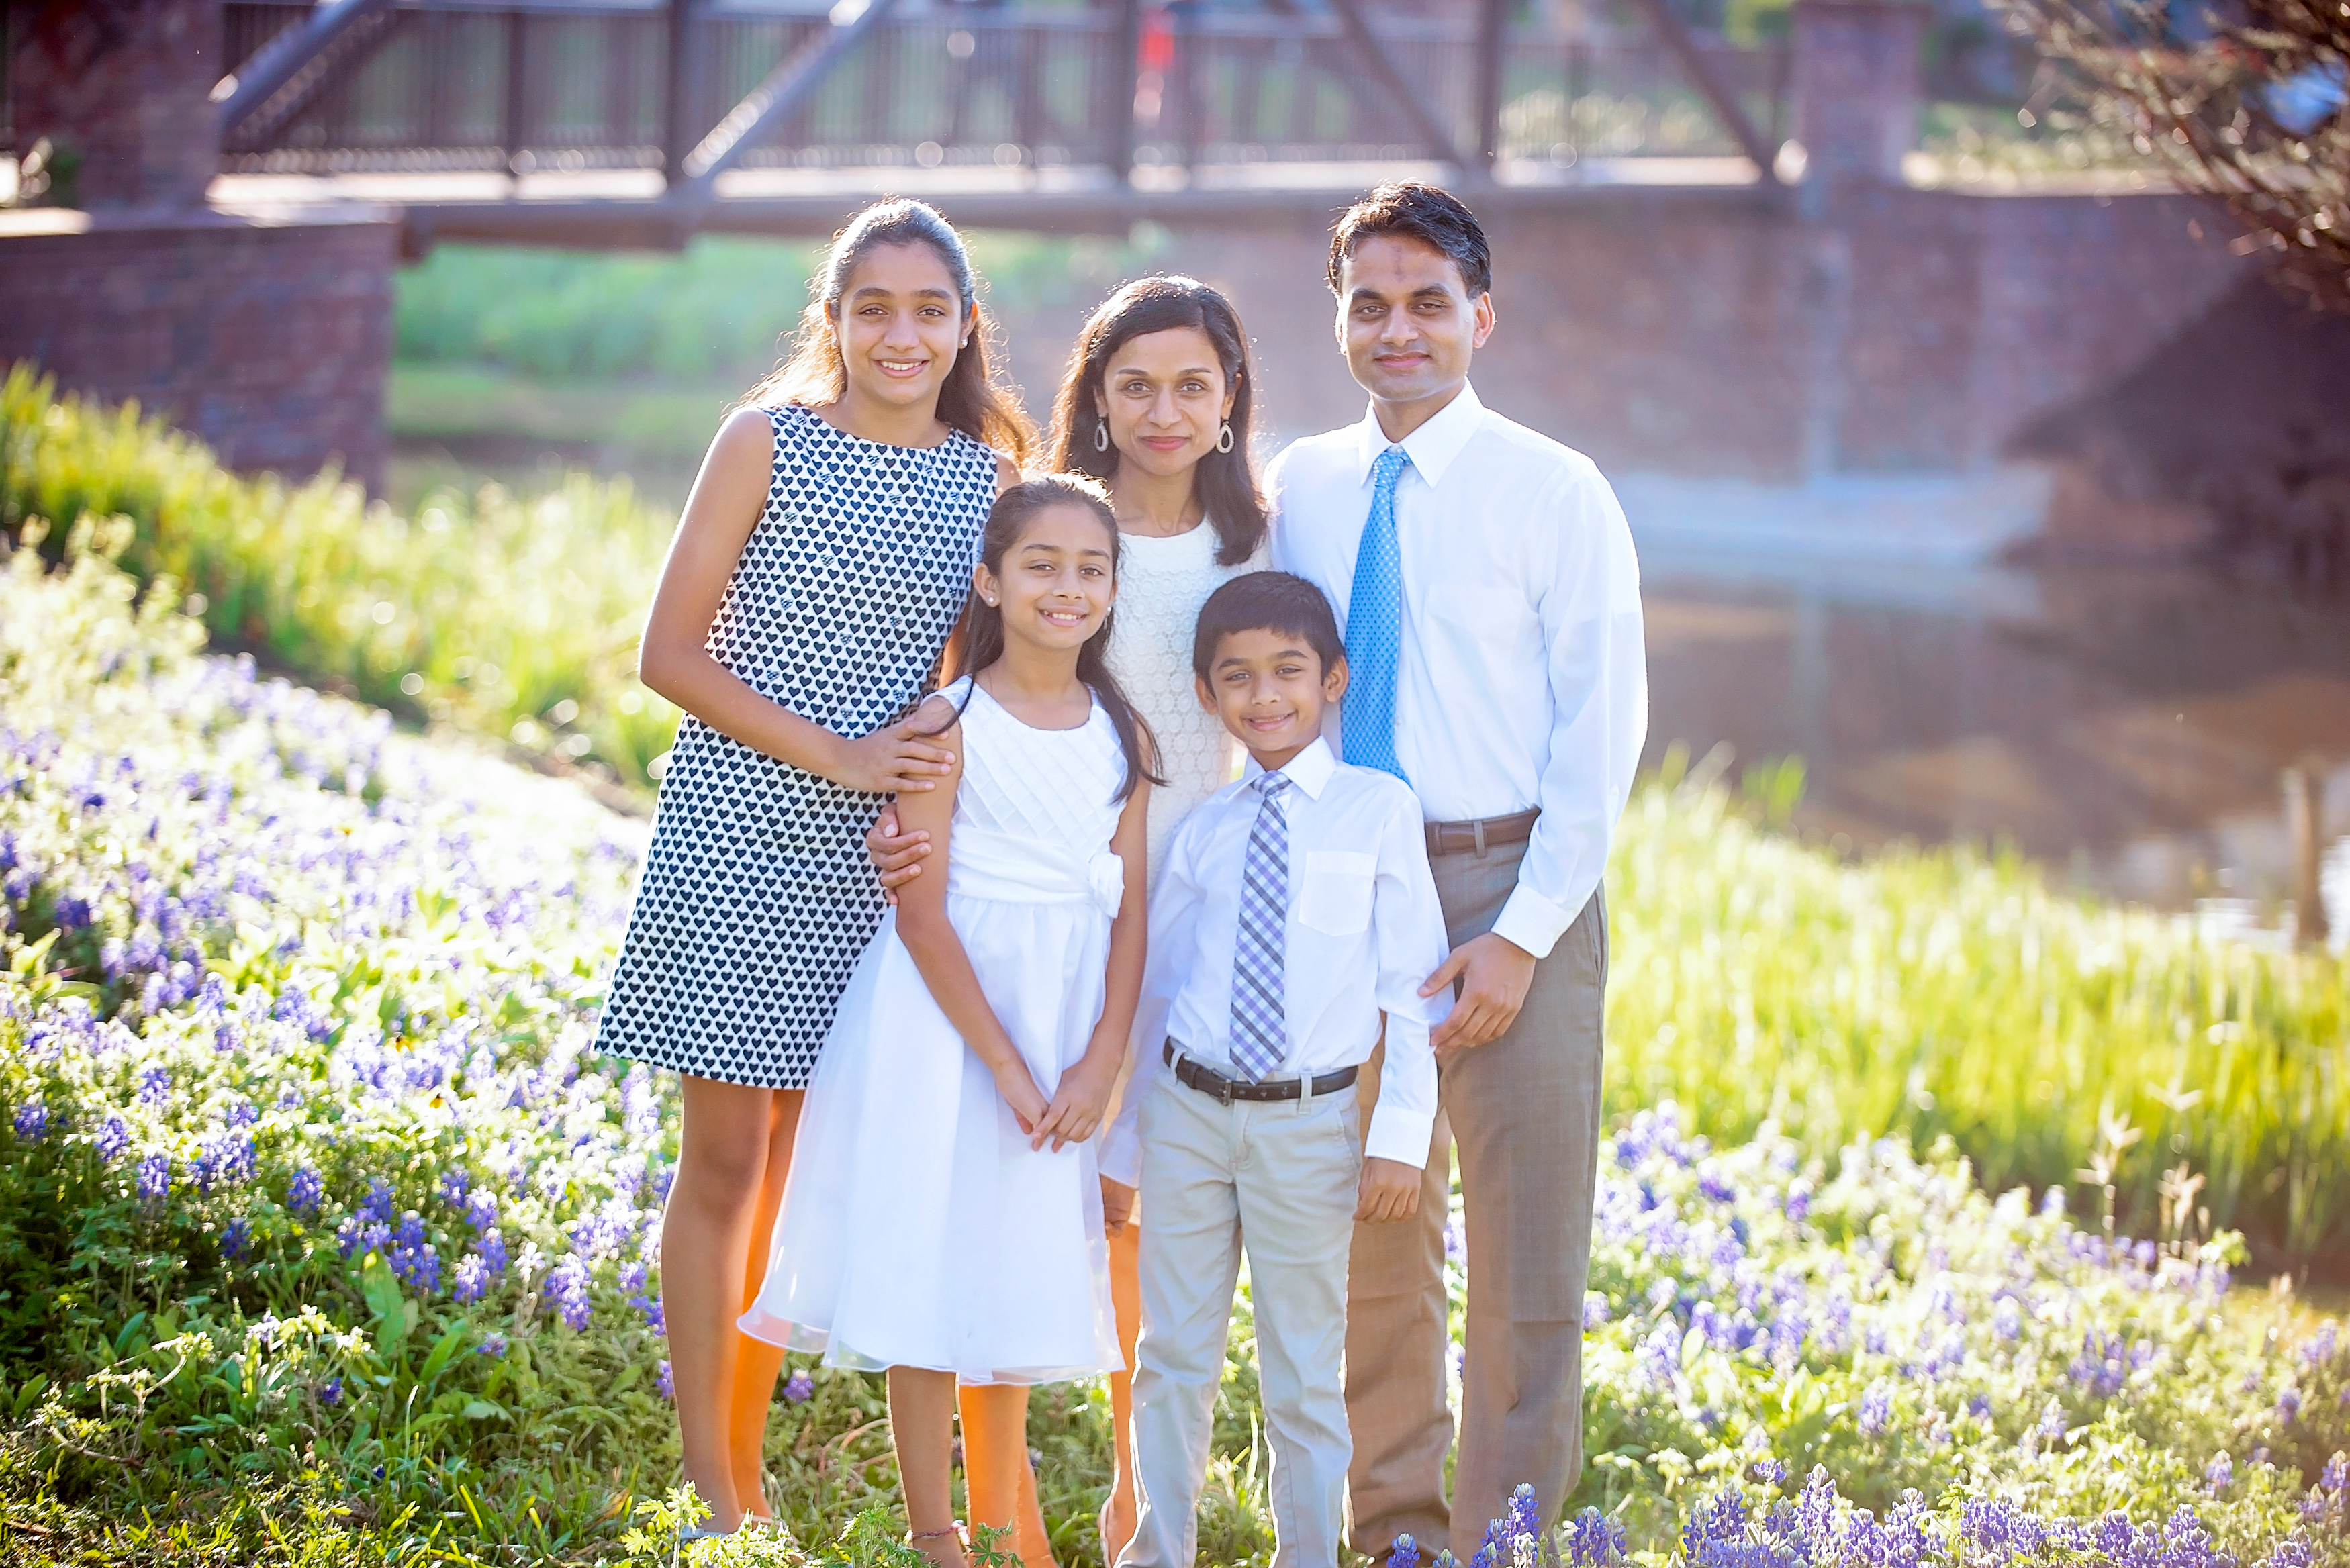 Dr Sandhya Harpavat and her family.